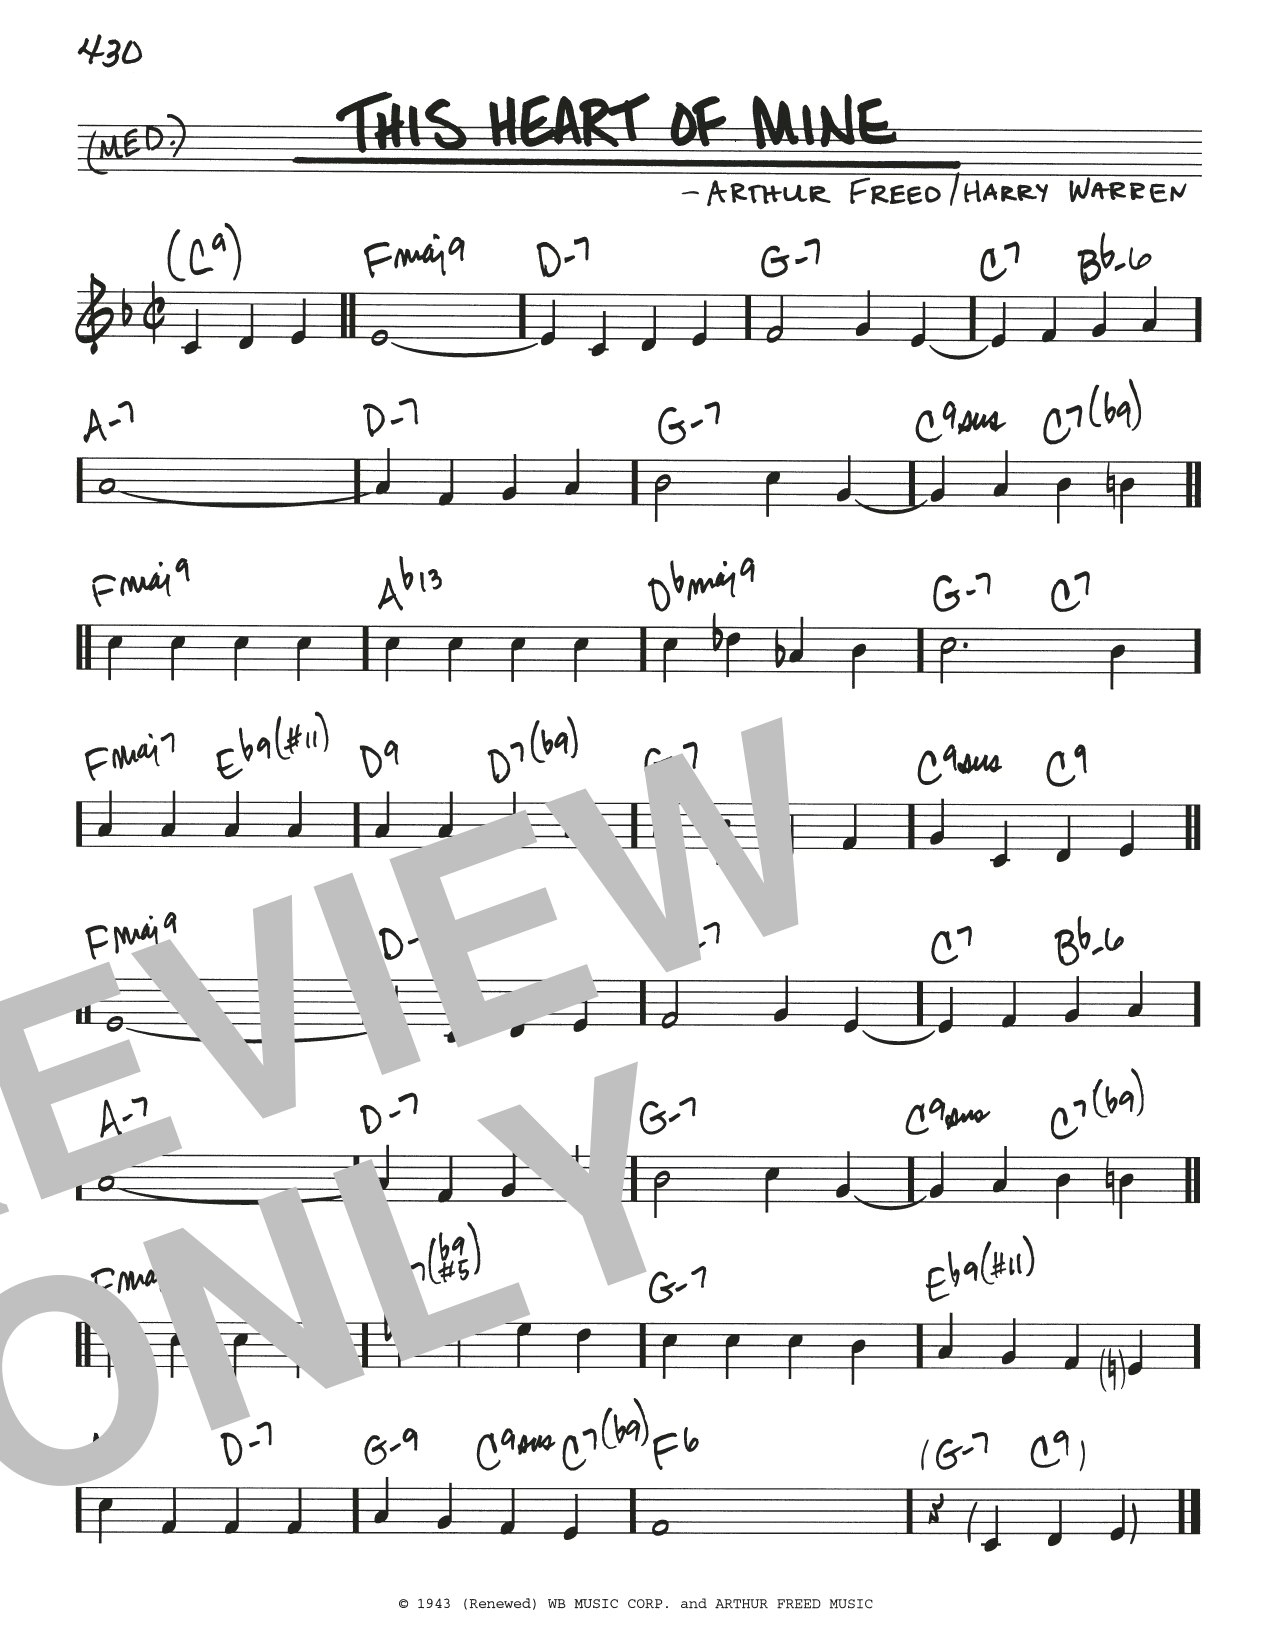 Arthur Freed & Henry Warren This Heart Of Mine sheet music notes and chords